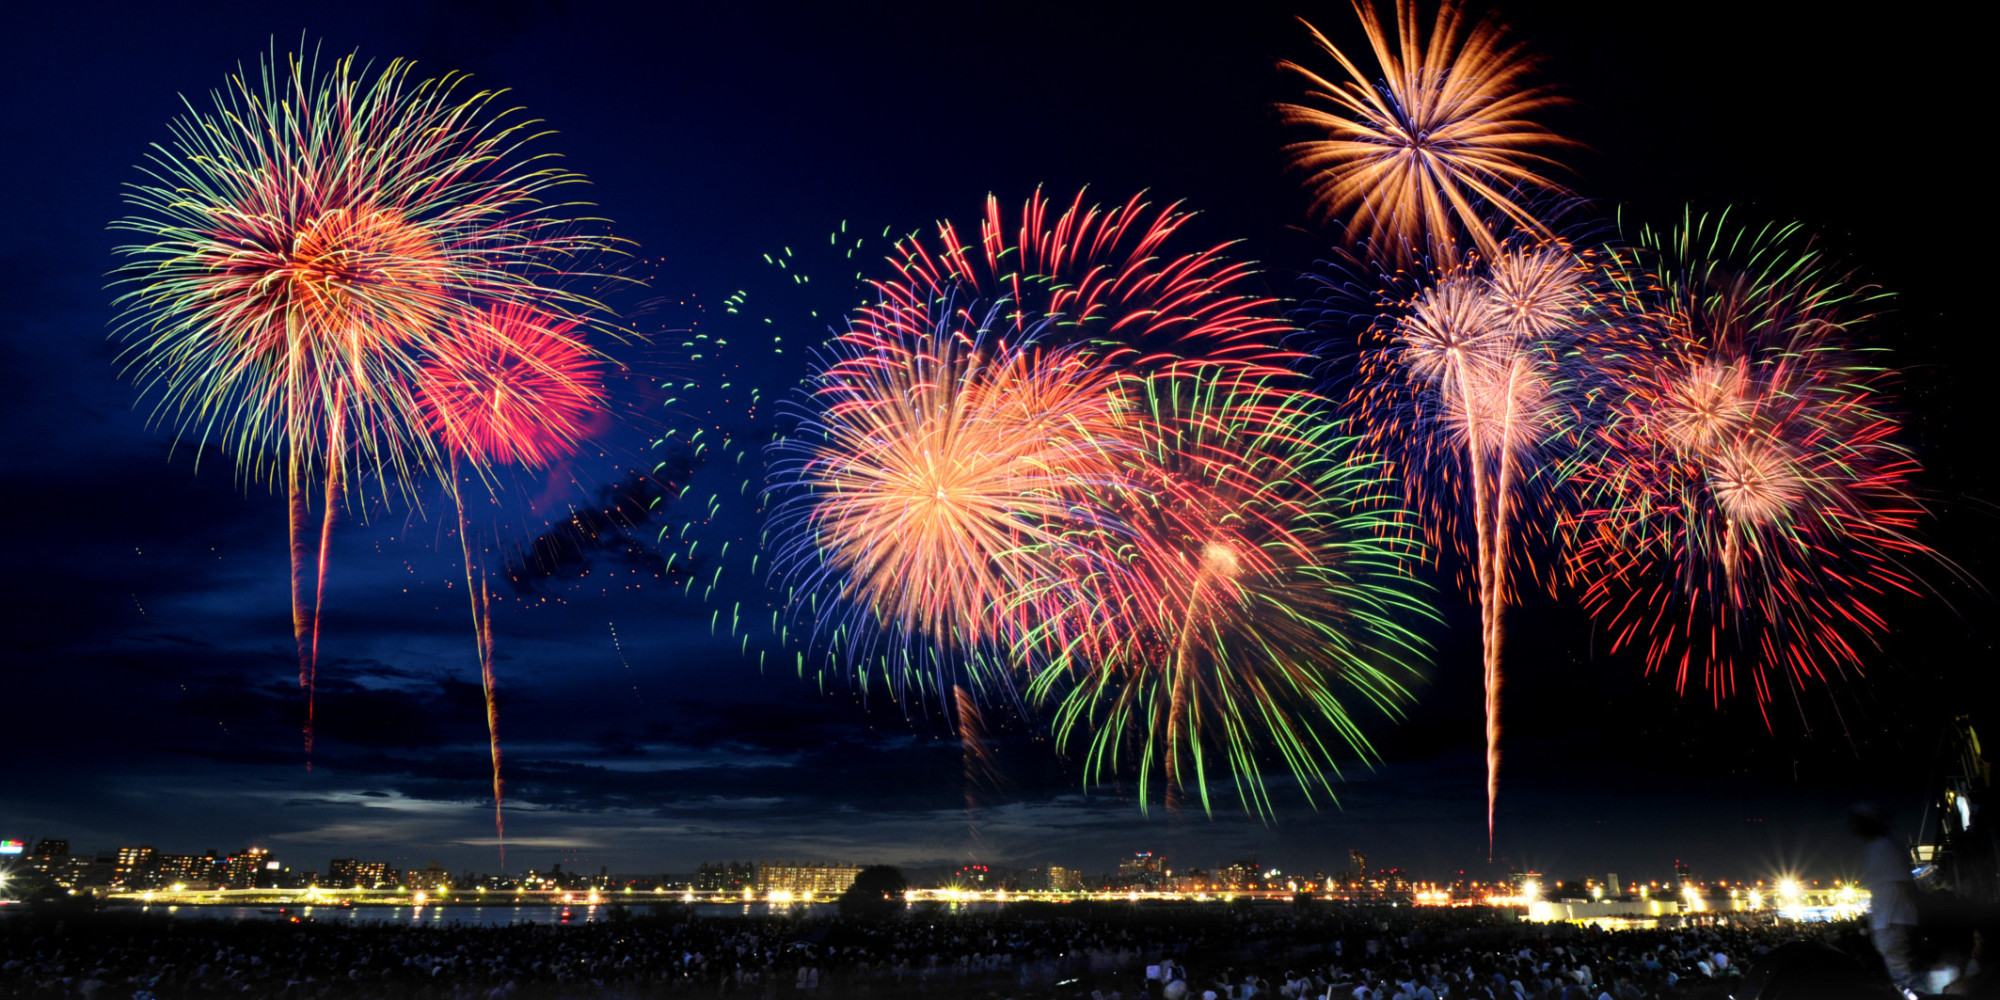 31 hd wallpapers of fireworks to celebrate the new year